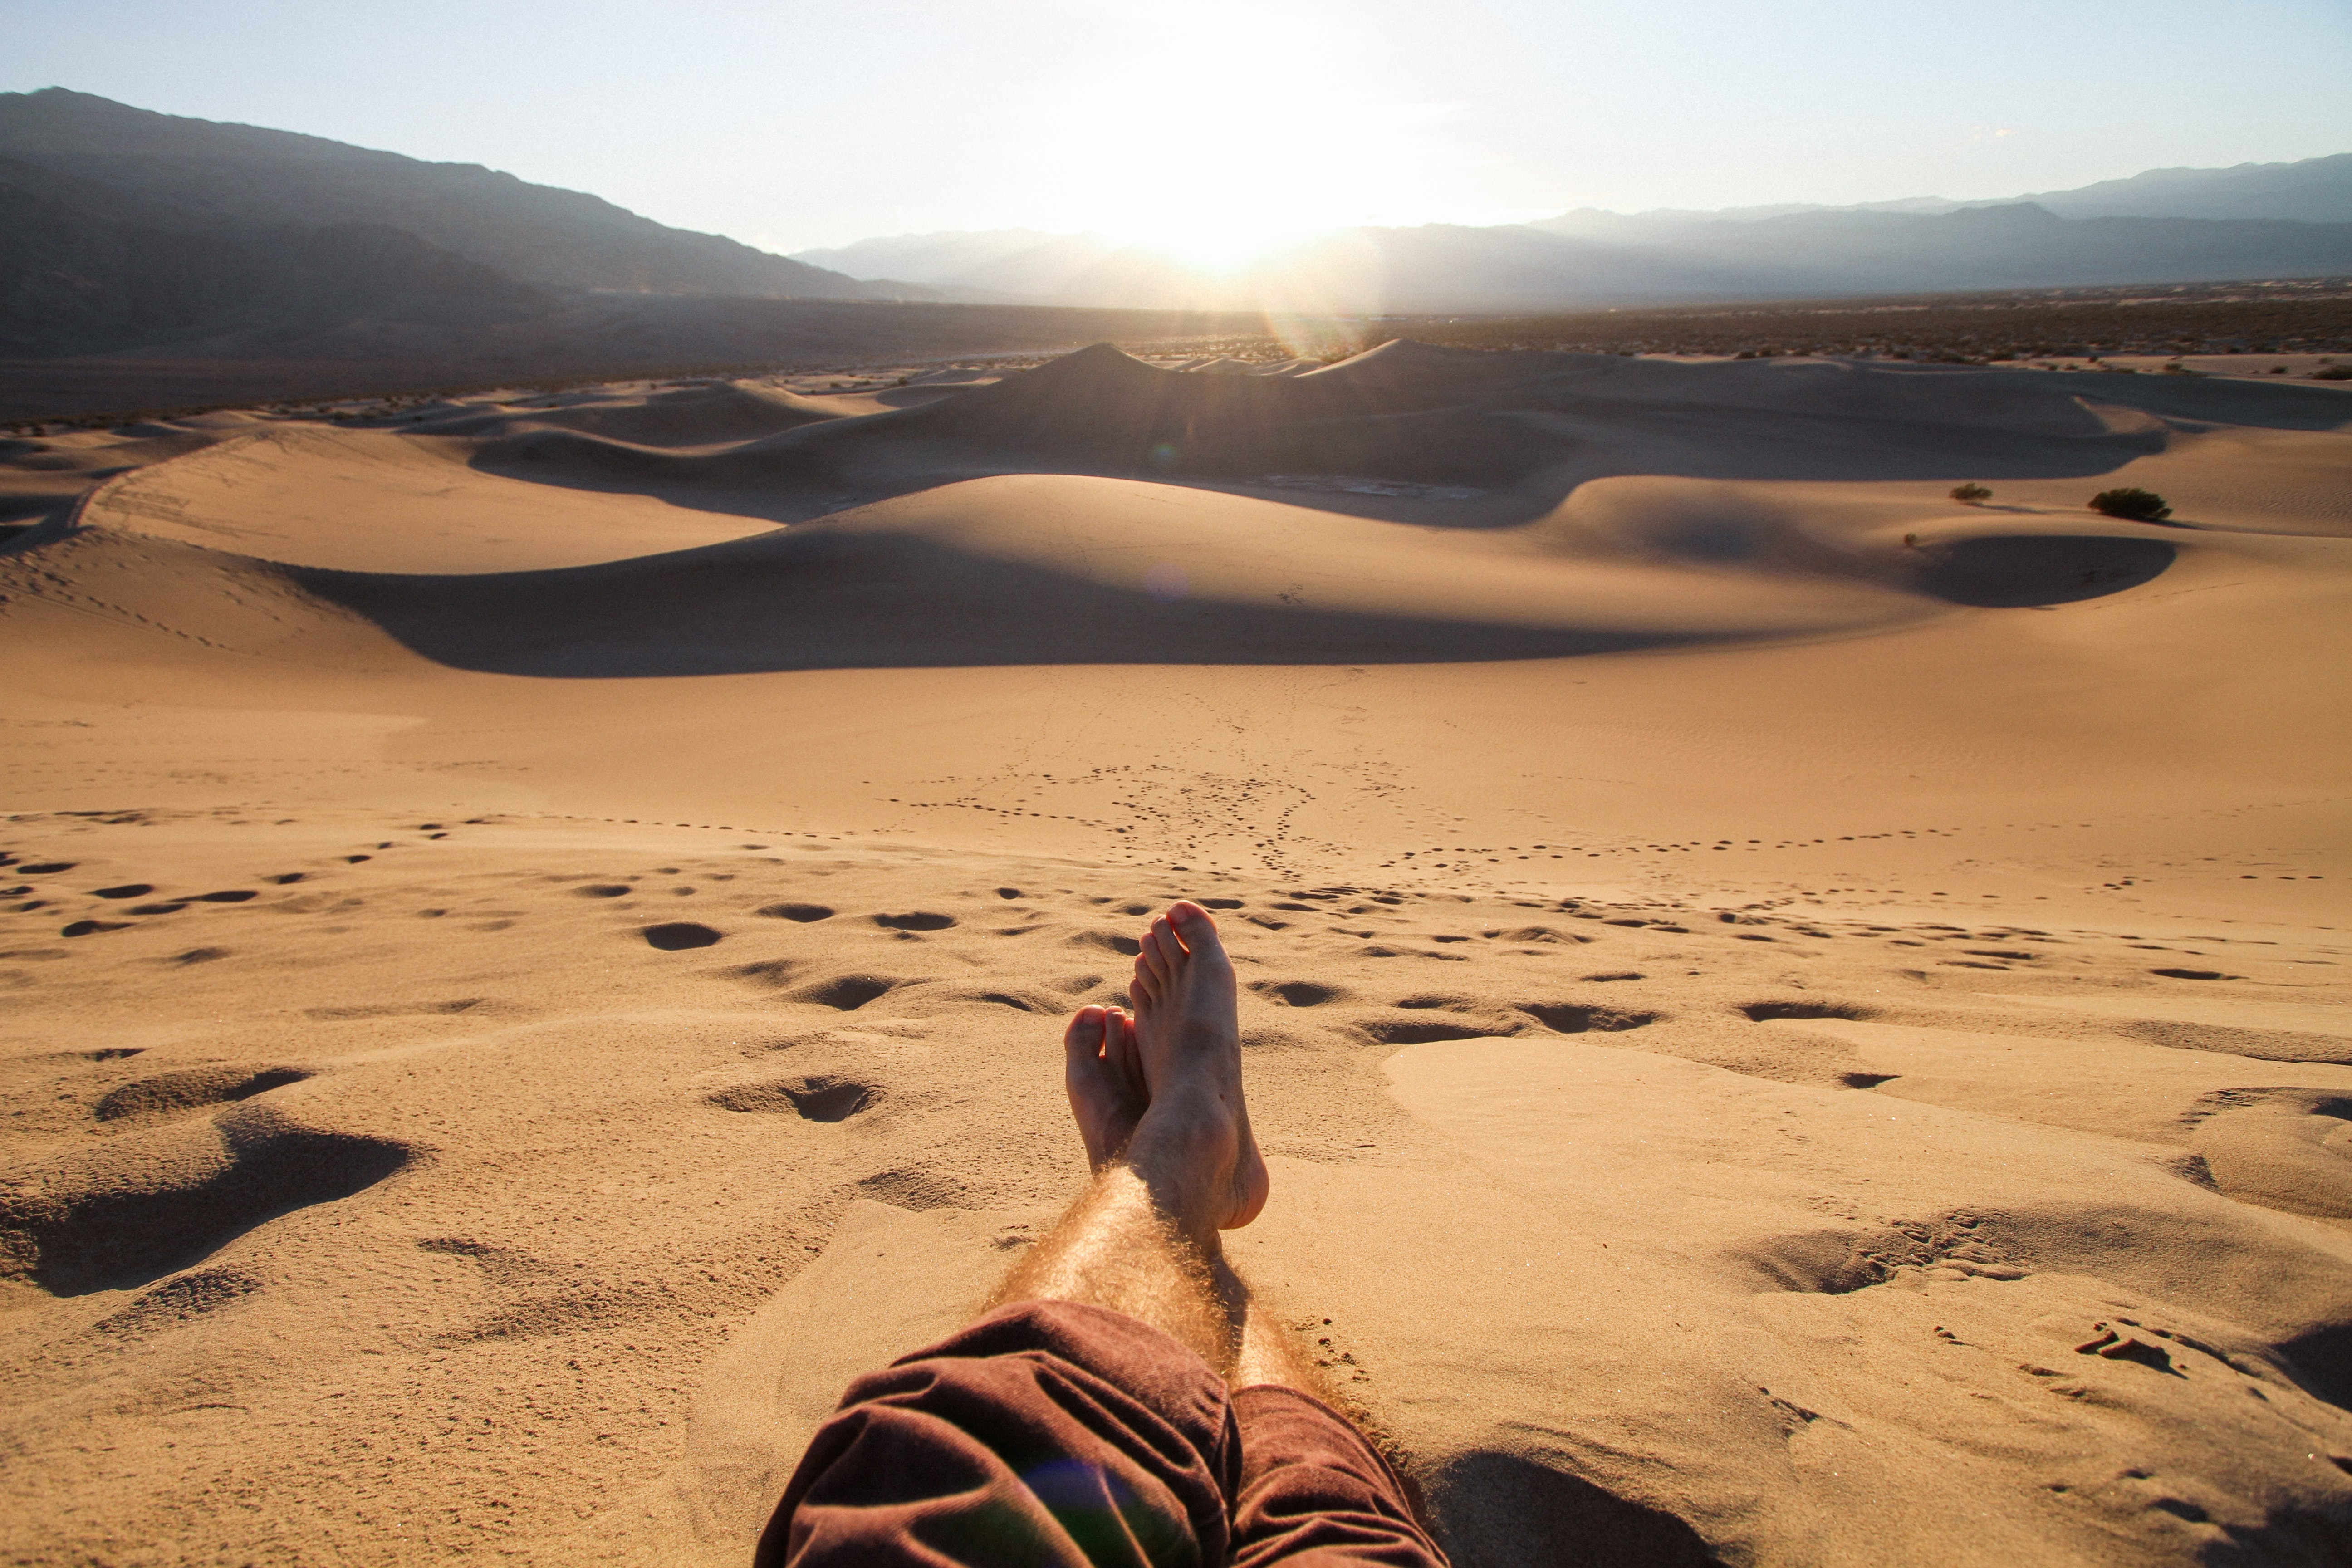 Lounging in Death Valley National Park desert sand